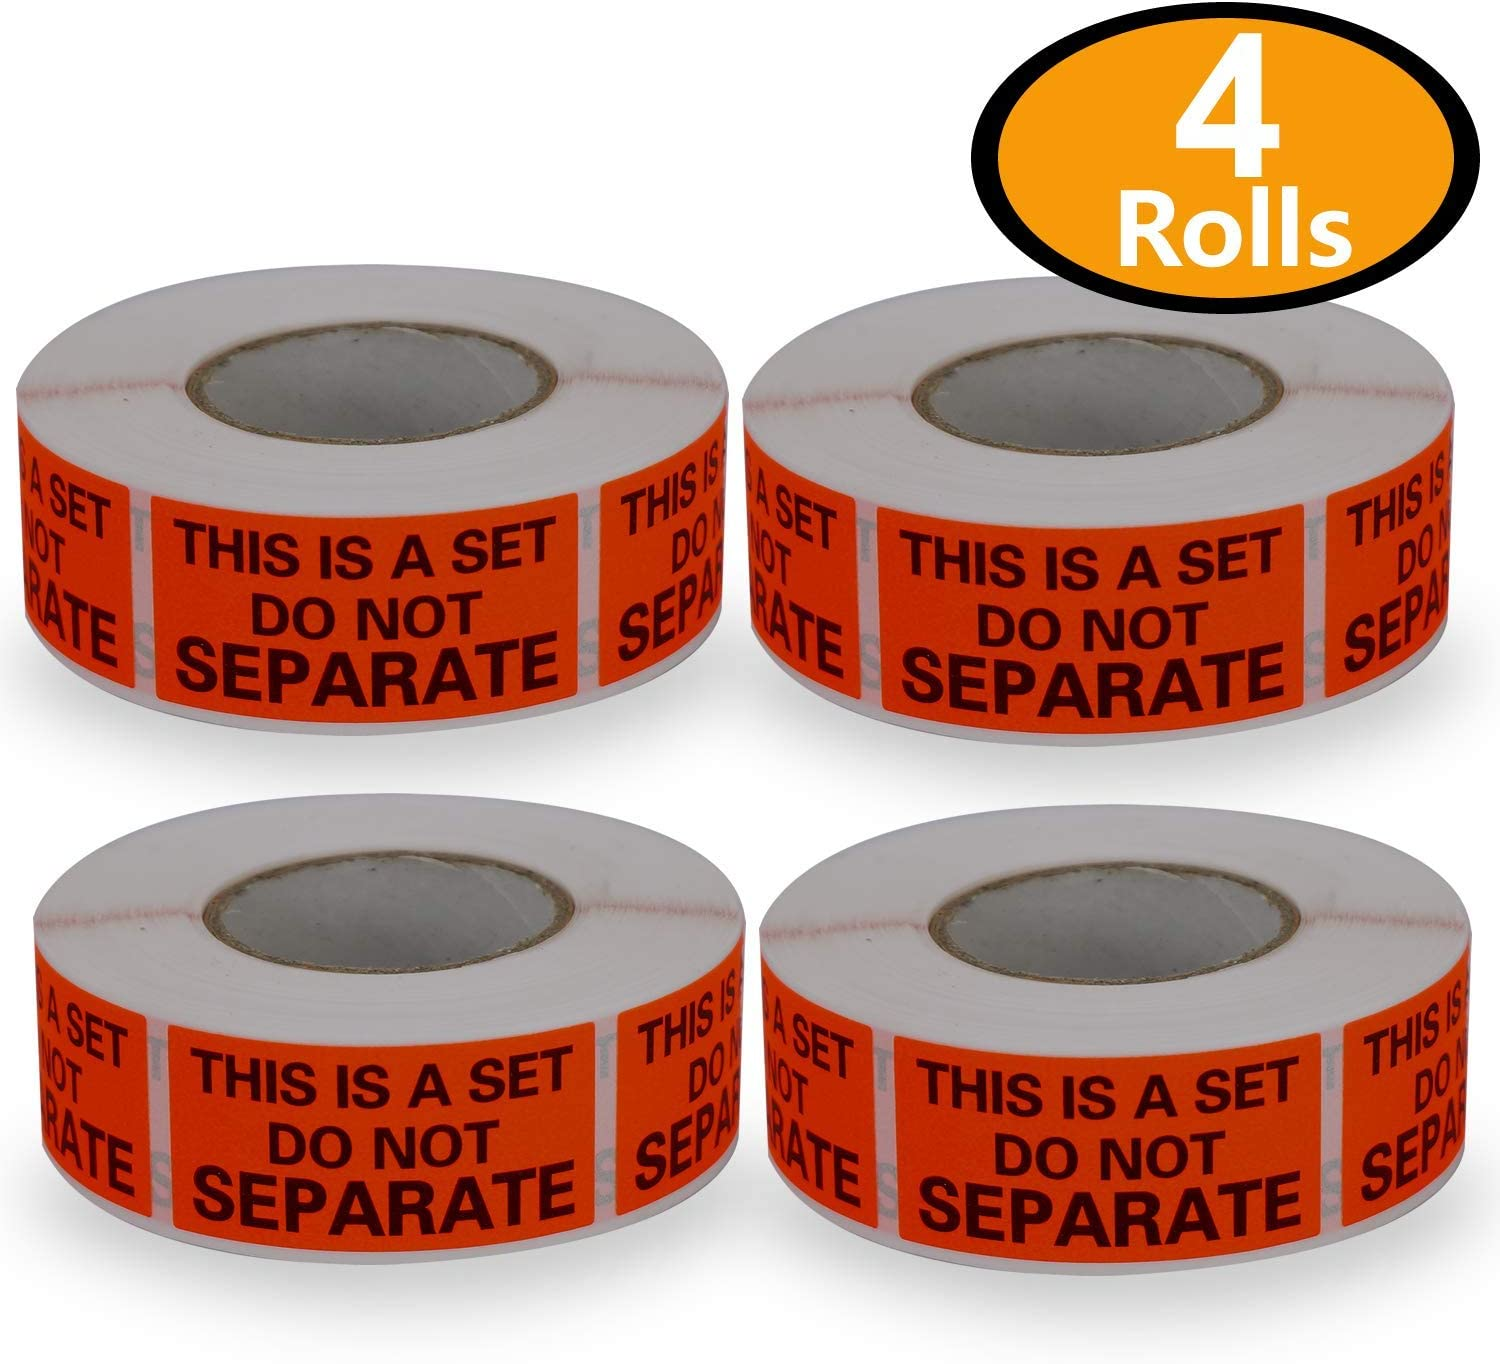 25mm x 50mm 4 Rolls//2000 Labels,This is a Set Do Not Separate,Fluorescent Red FBA Packing Labels